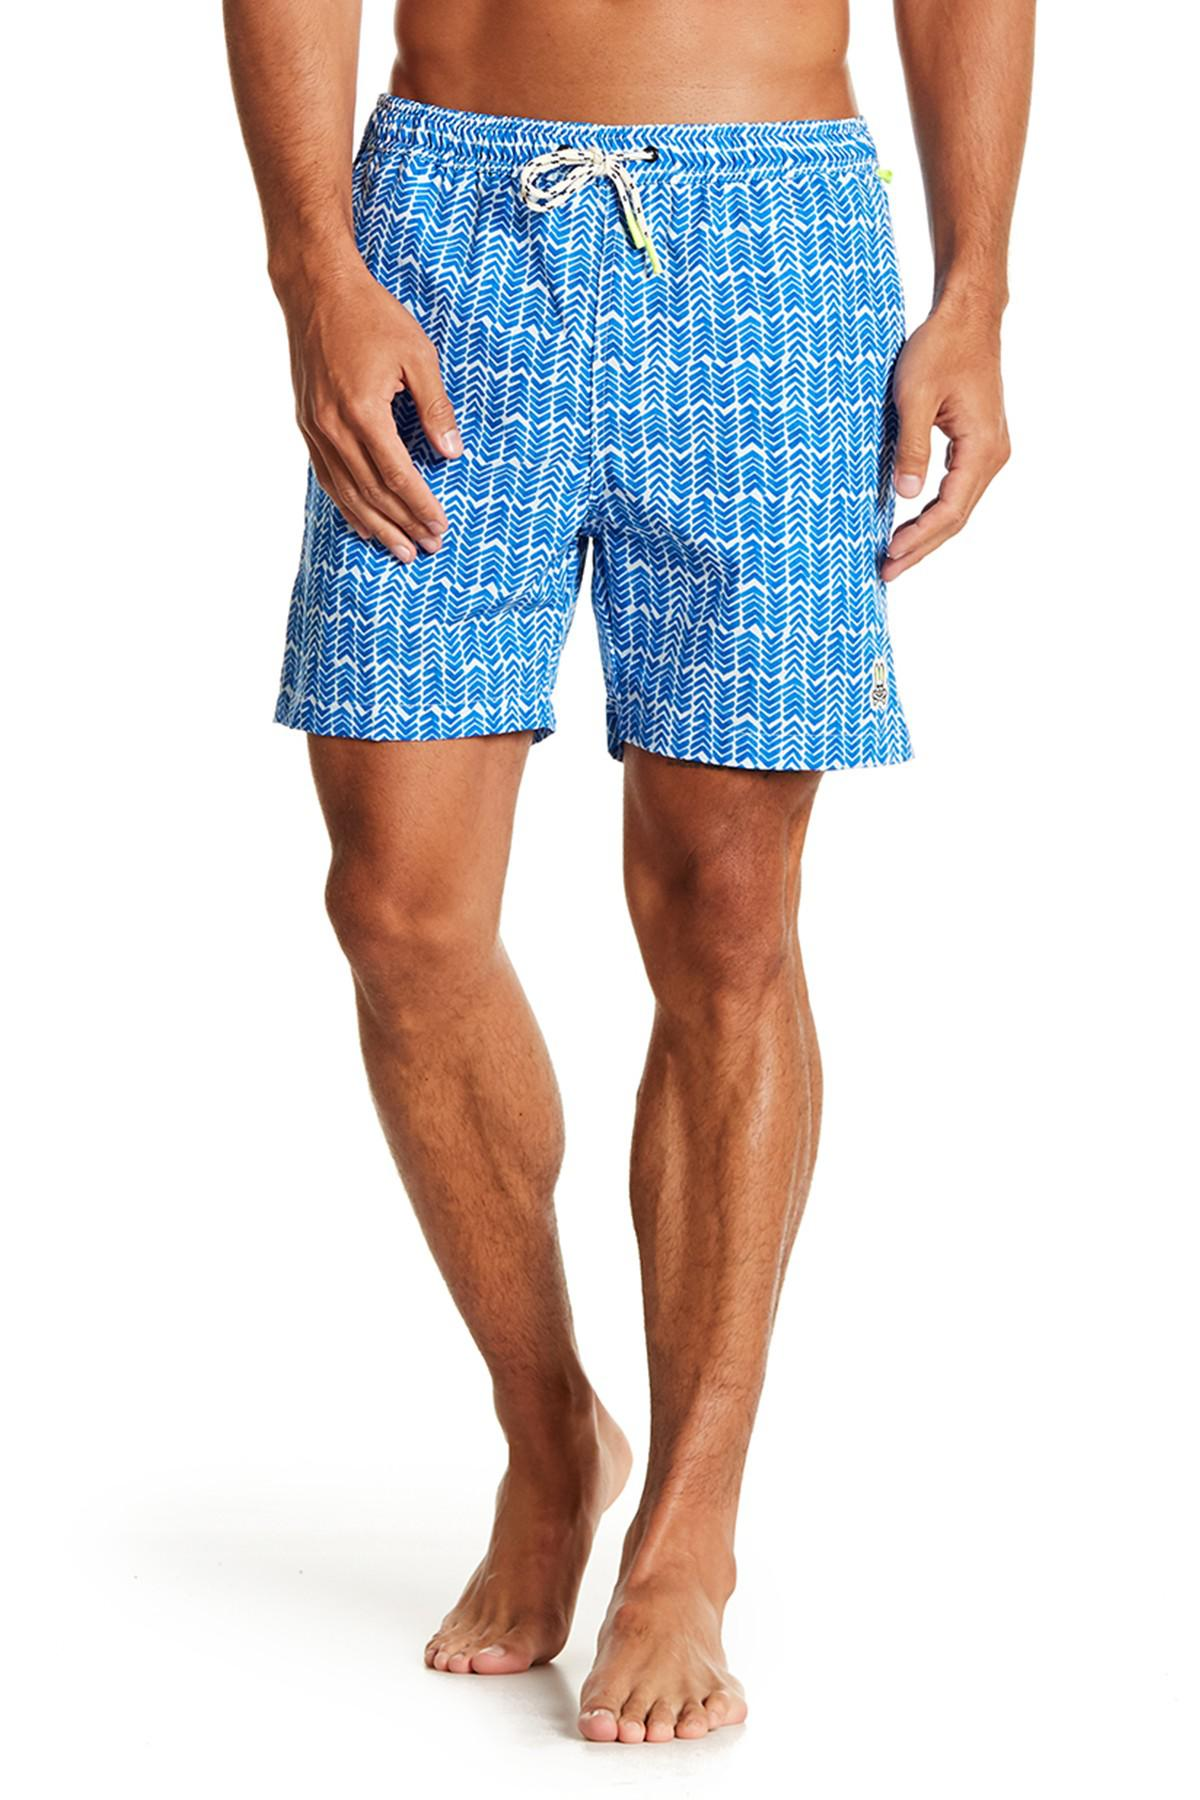 ccdc696010b93 Lyst - Psycho Bunny Watermark Herringbone Print Swim Trunks in Blue ...